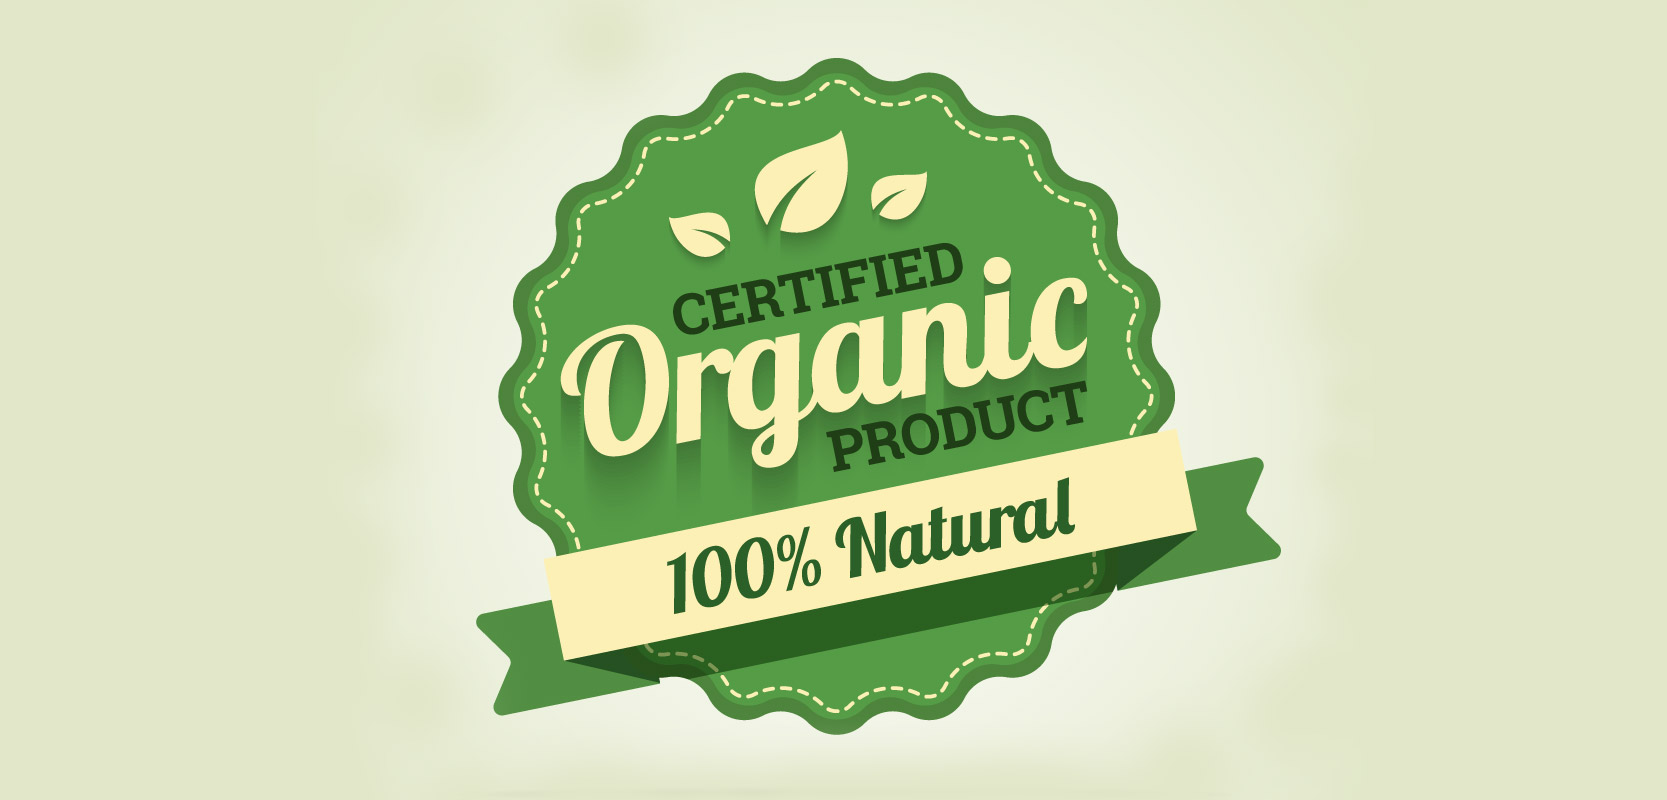 Benefits of Going Organic